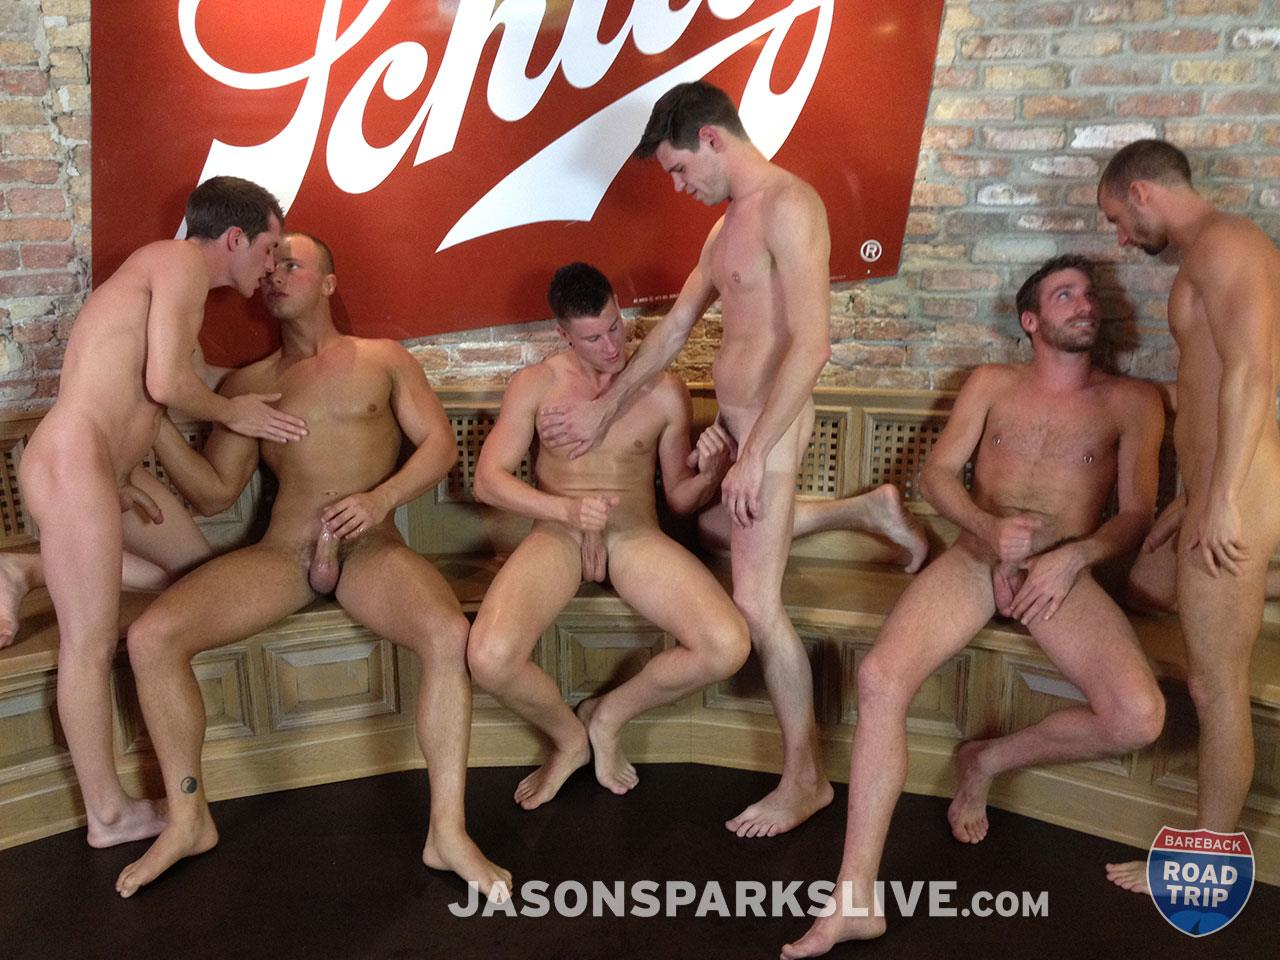 Jason Sparks Live Dustin Tyler Shawn Andrews Brendon Scott Corbin Riley Antonio Paul Jake Matthews Bareback Orgy Amateur Gay Porn 13 Big Cock Amateur Bareback Orgy in Milwaukee